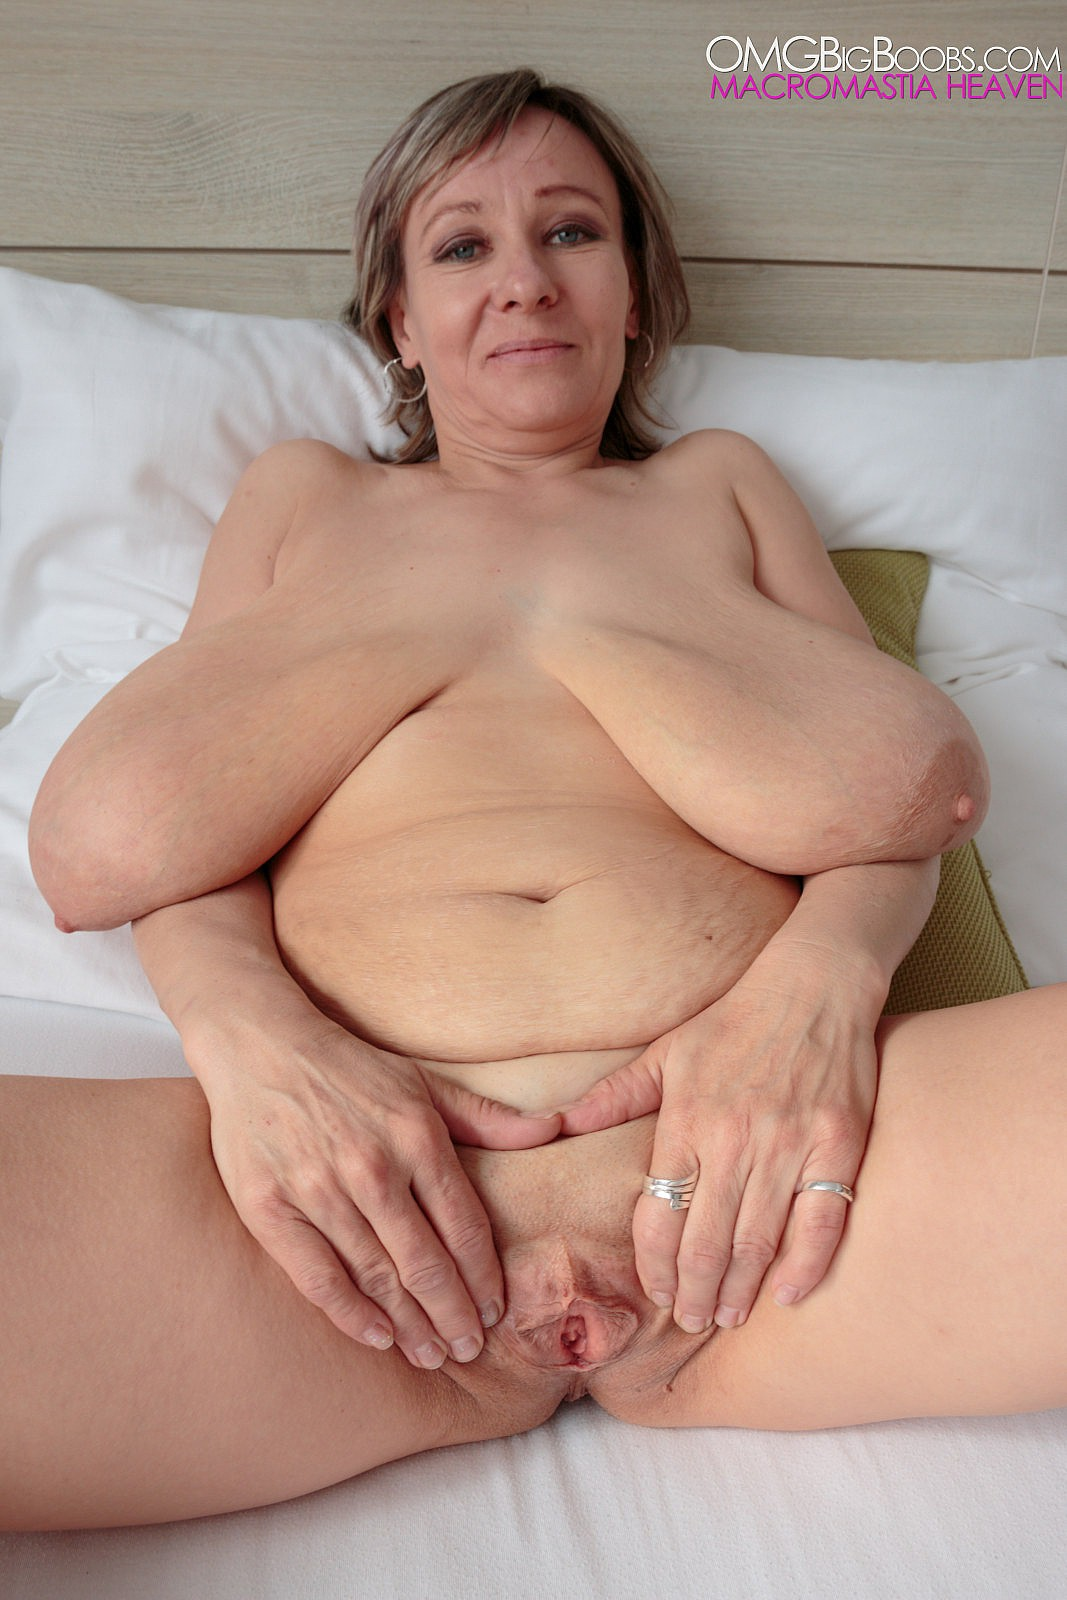 Mature Women Big Tits Tumblr